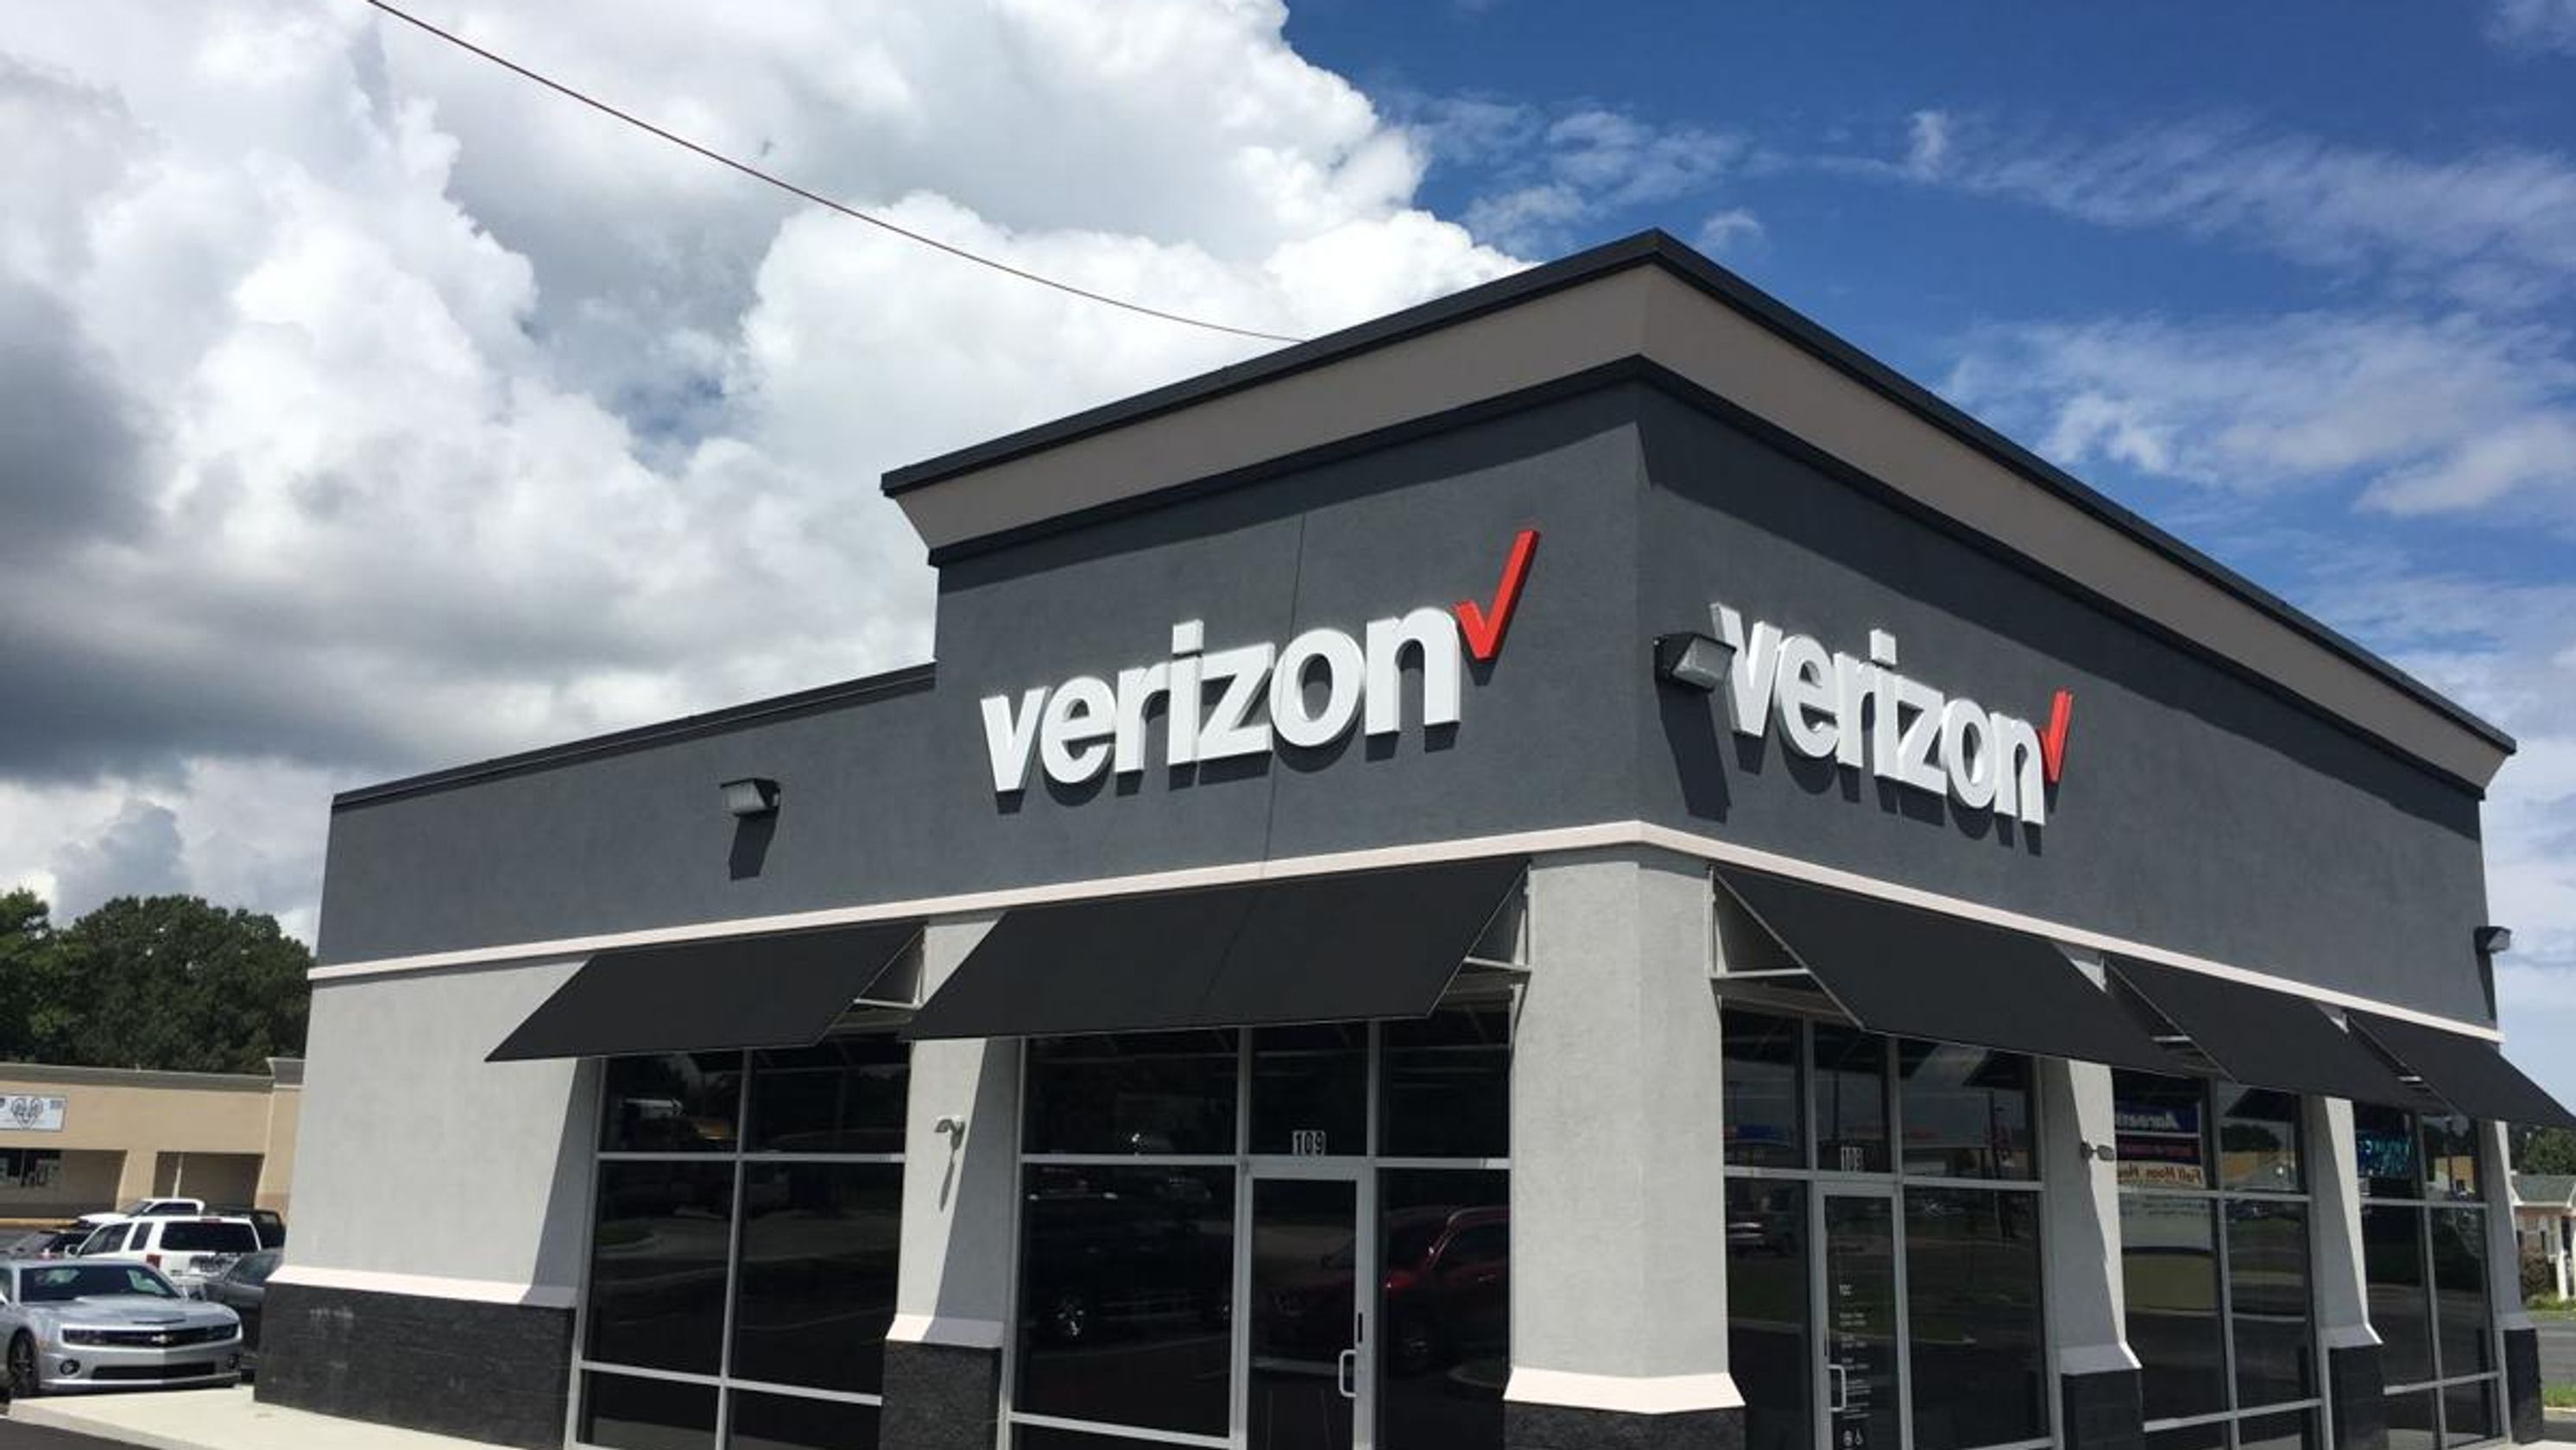 Verizon 5G mobile network available now in Chicago and